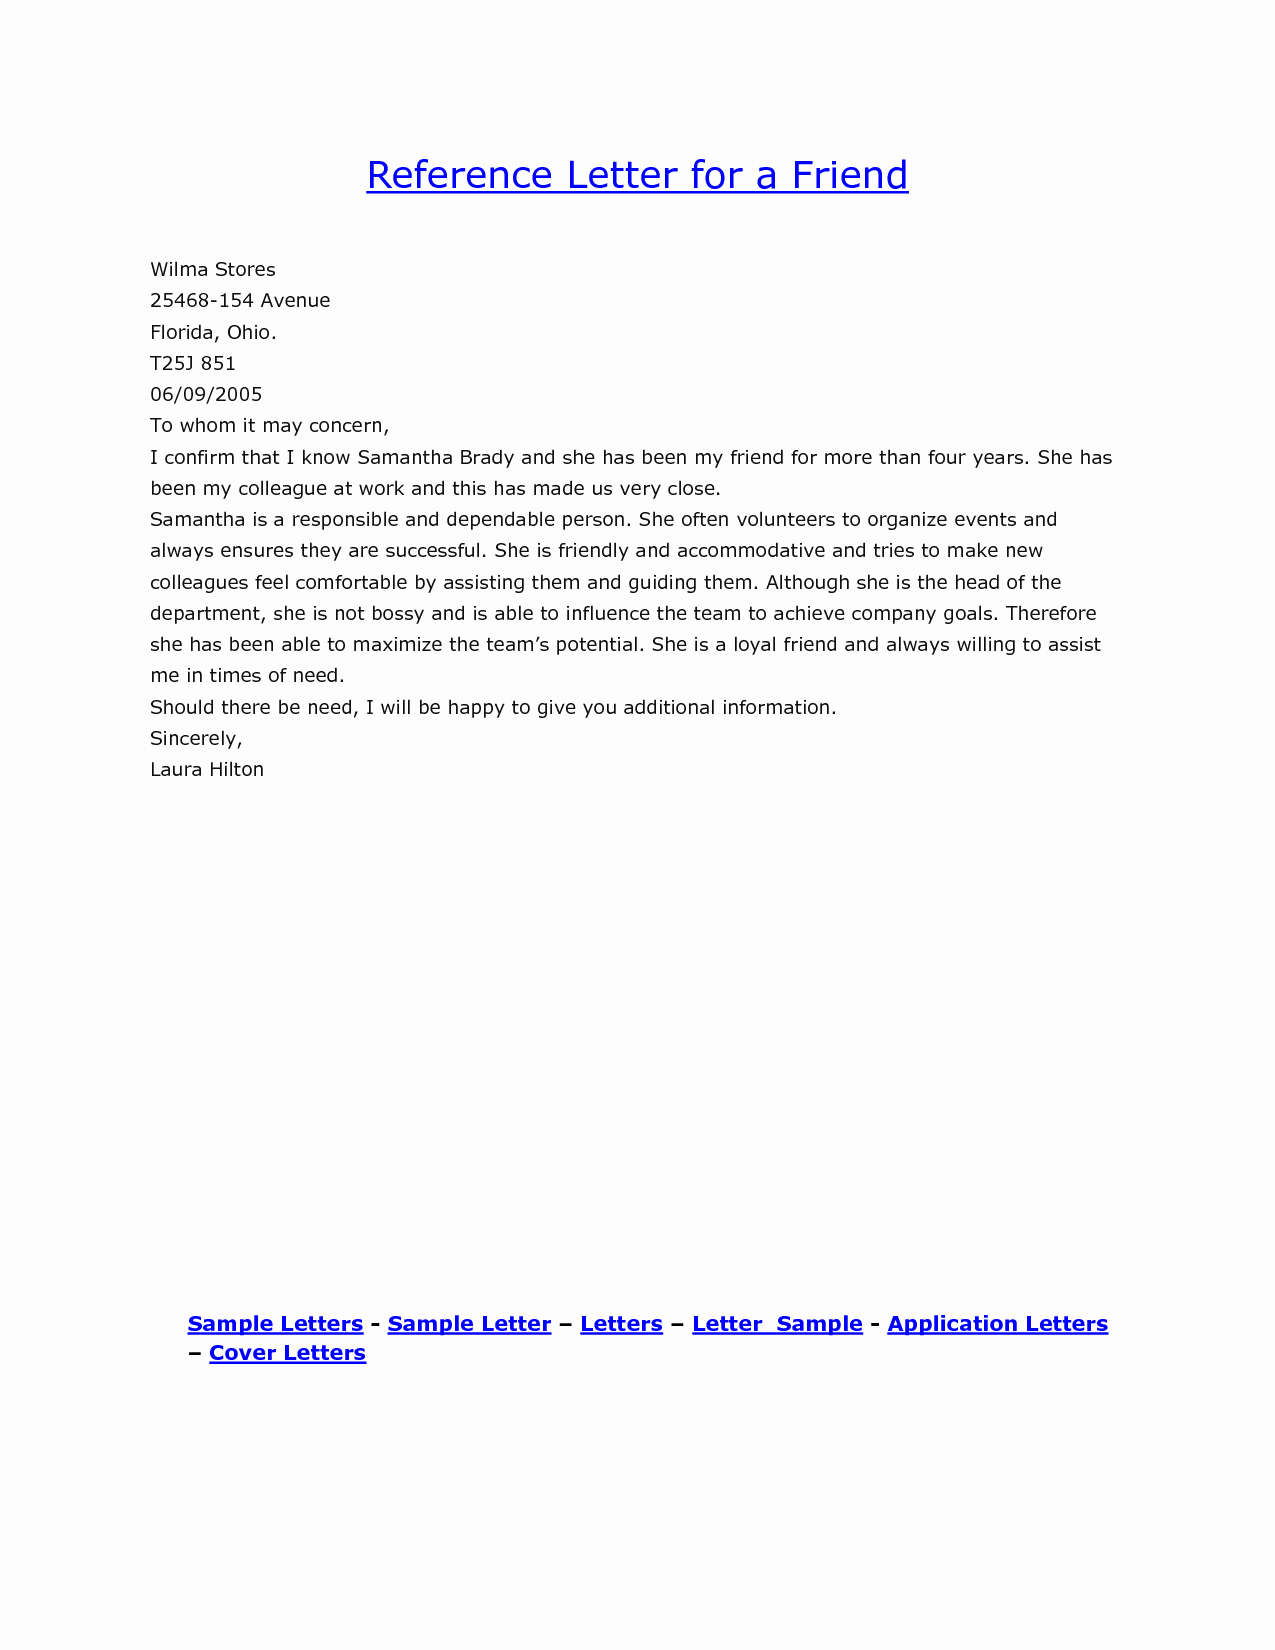 Letter Of Personal Reference Inspirational Personal Reference Letter for A Friend